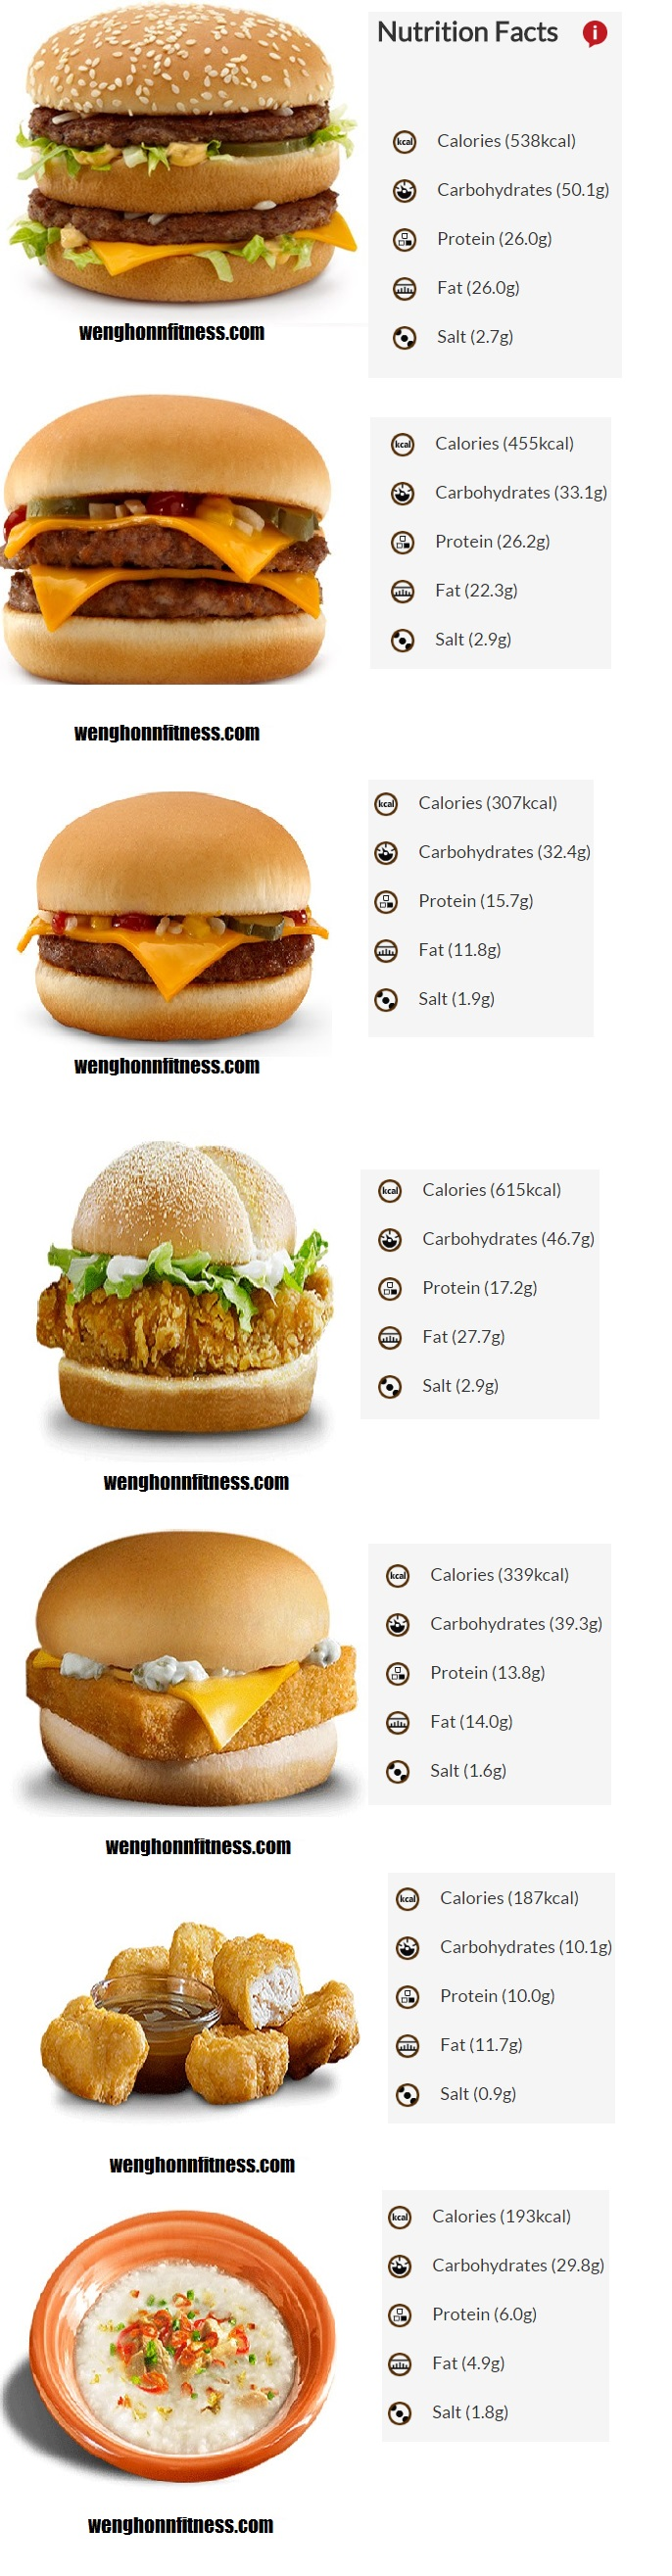 fast food restaurants macdonald burger nutrition facts